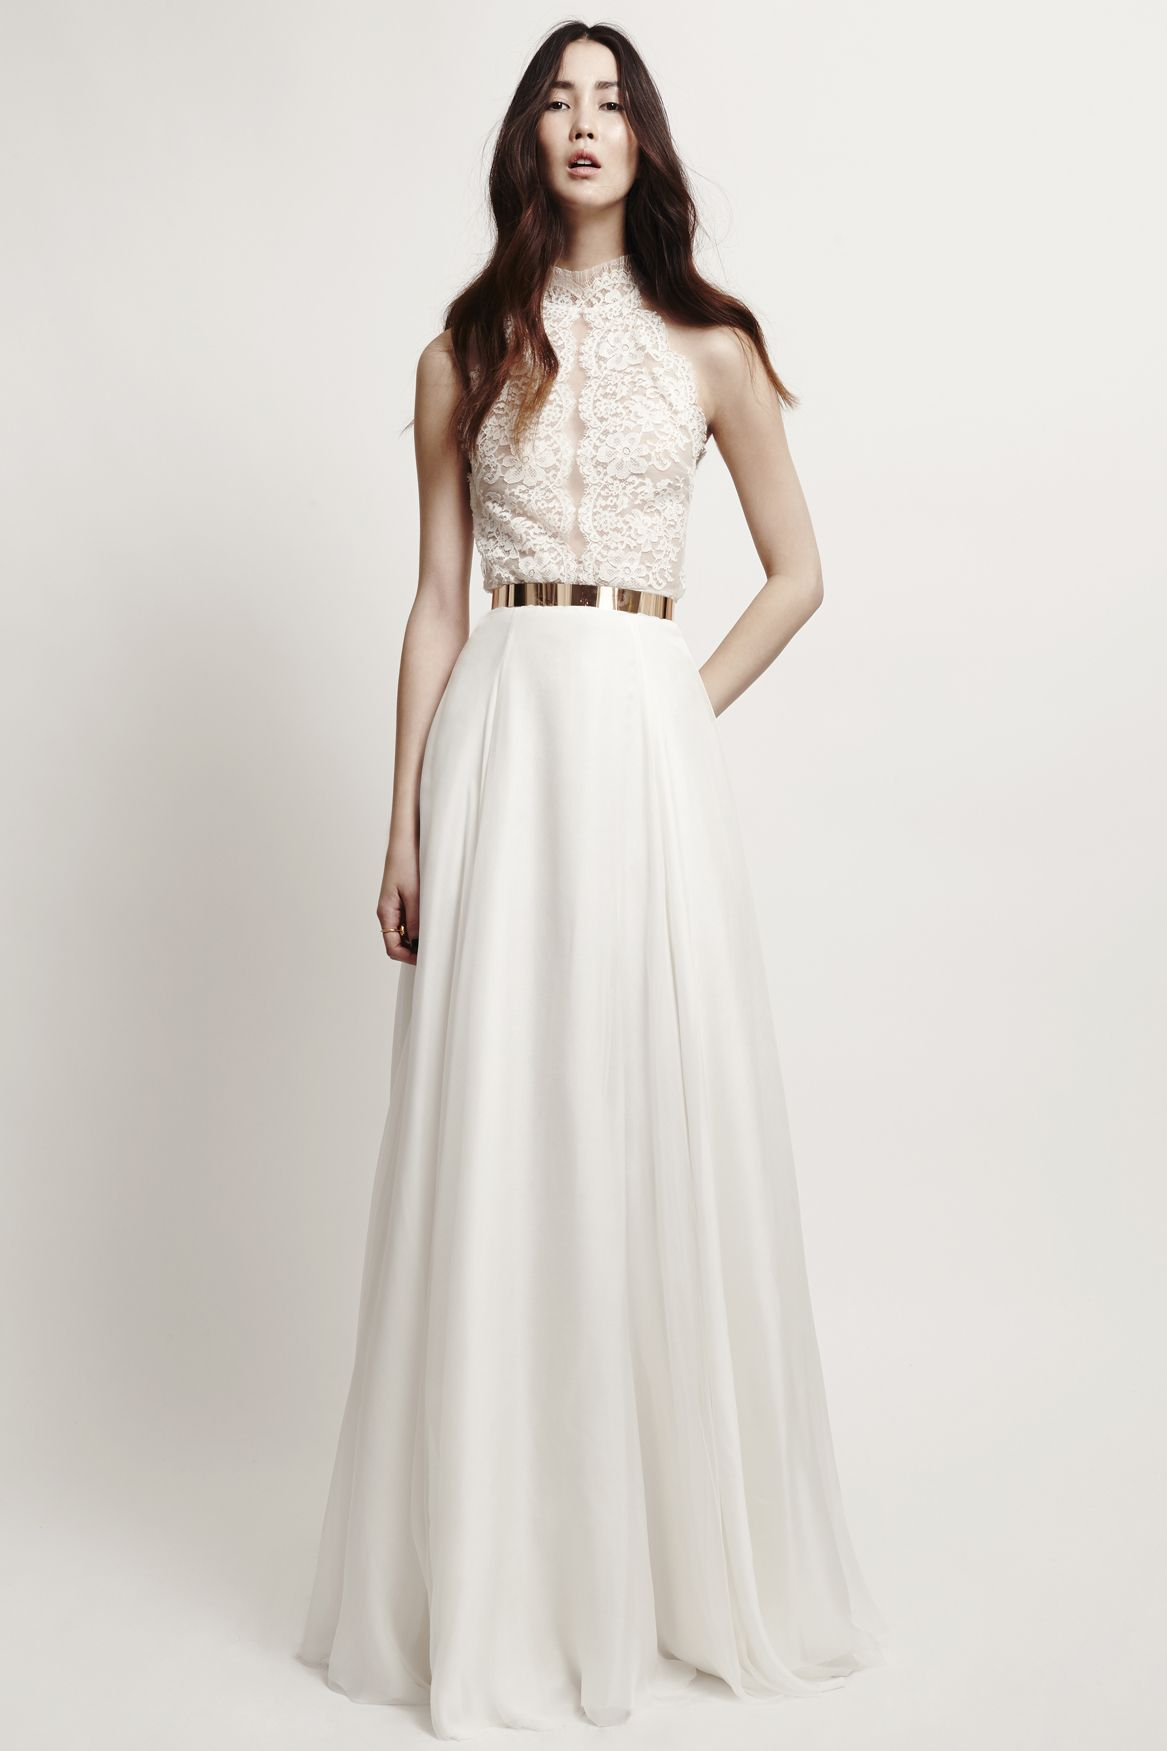 Belle Virginie Dress, Kaviar Gauche: Belle Virginie Dress | Wedding ...